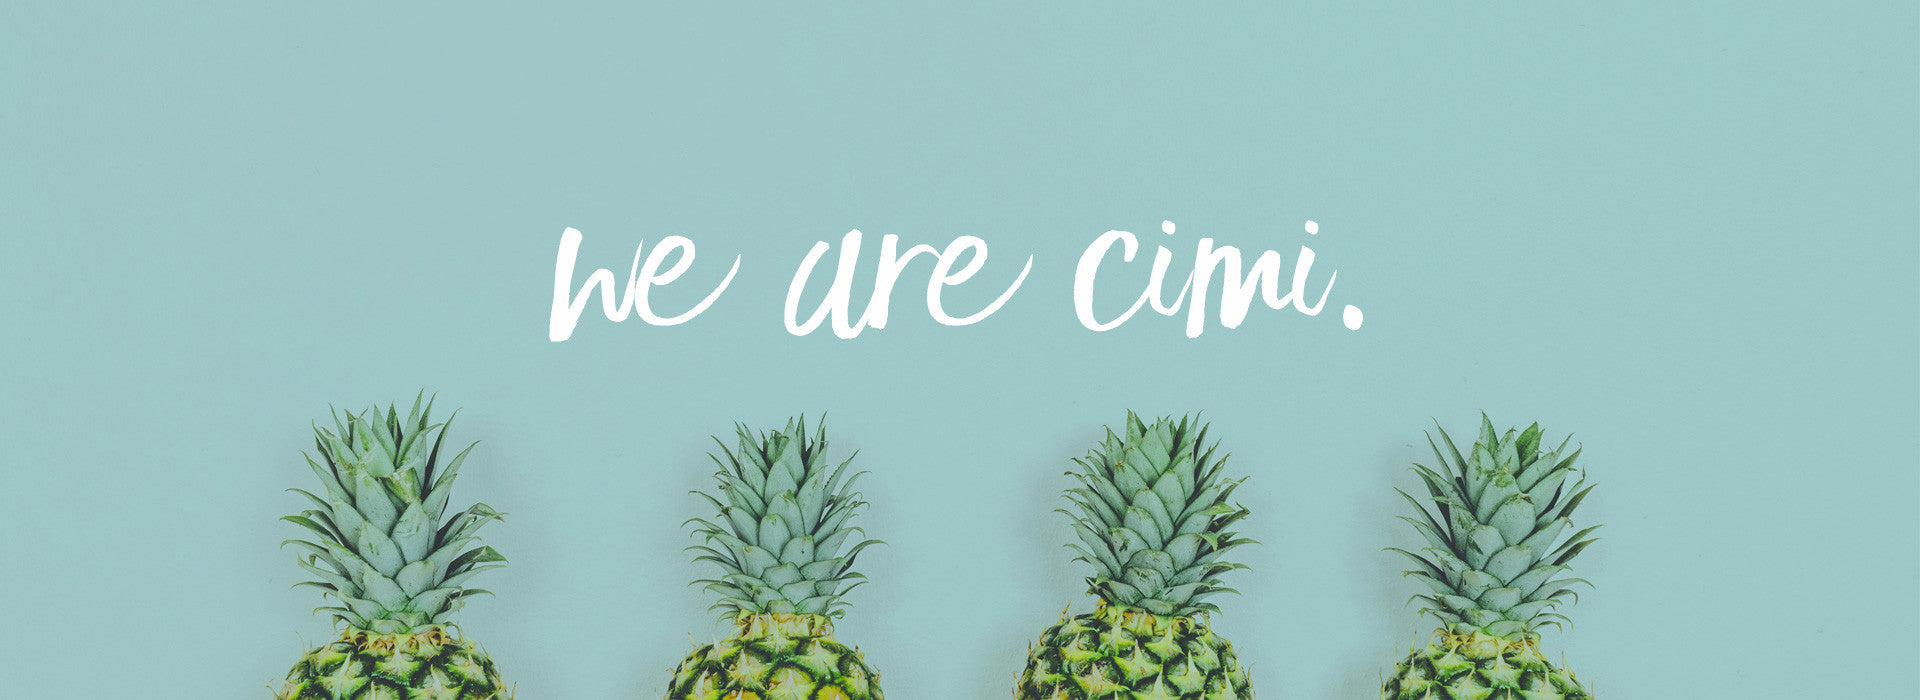 about cimi pineapple